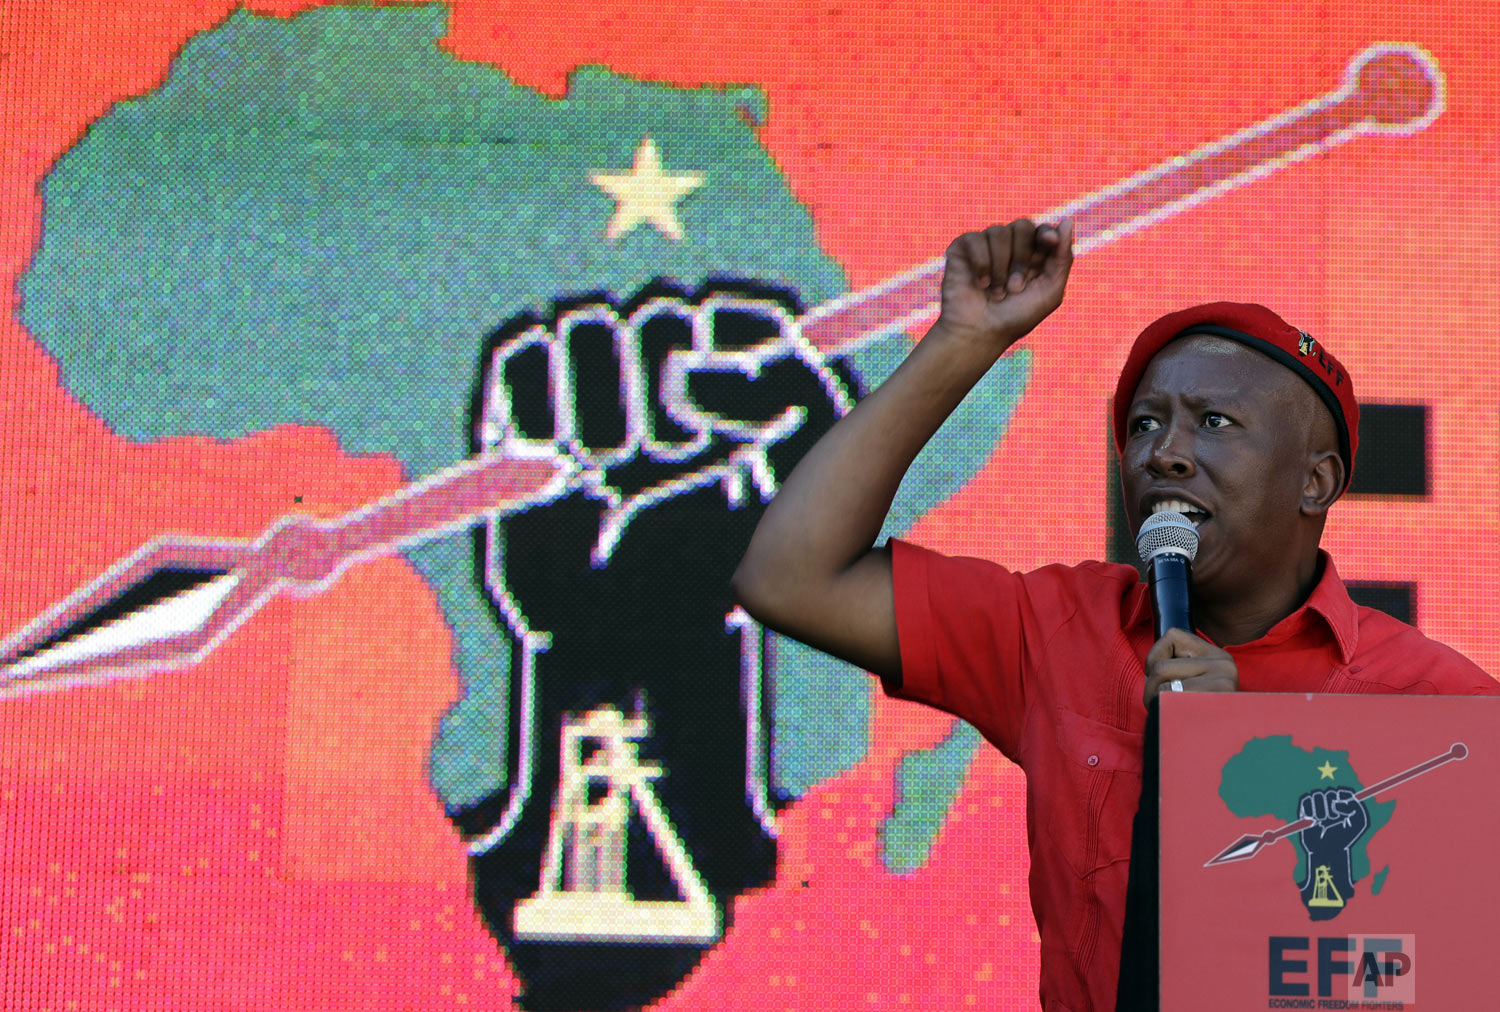 Leader of the Economic Freedom Fighters (EFF) party, Julius Malema, addresses supporters during an election rally at Orlando Stadium in Soweto, South Africa, Sunday, May 5, 2019. The ruling African National Congress was on course to win South Africa's presidential and parliamentary elections by a comfortable margin with almost all votes counted Friday, but the tally showed the party lost support from five years earlier amid deep anger over corruption. The populist, left-wing EFF increased its share of the vote from 6% to 10. (AP Photo/Themba Hadebe)